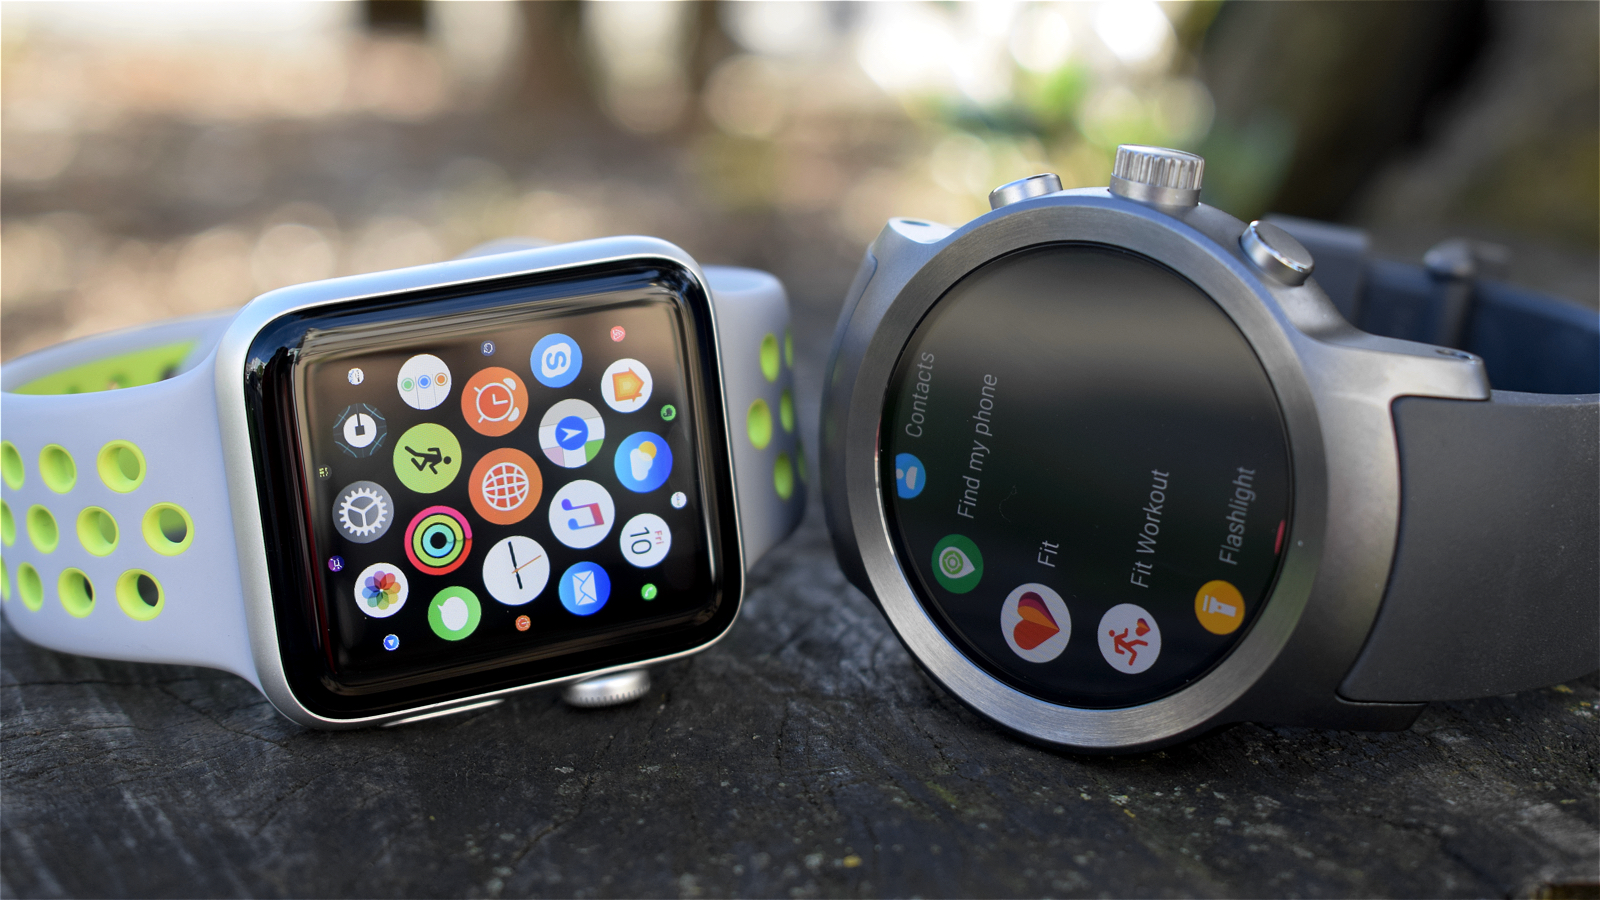 23a08e780082 Now would be a good time for the Apple Watch to get Android-friendly